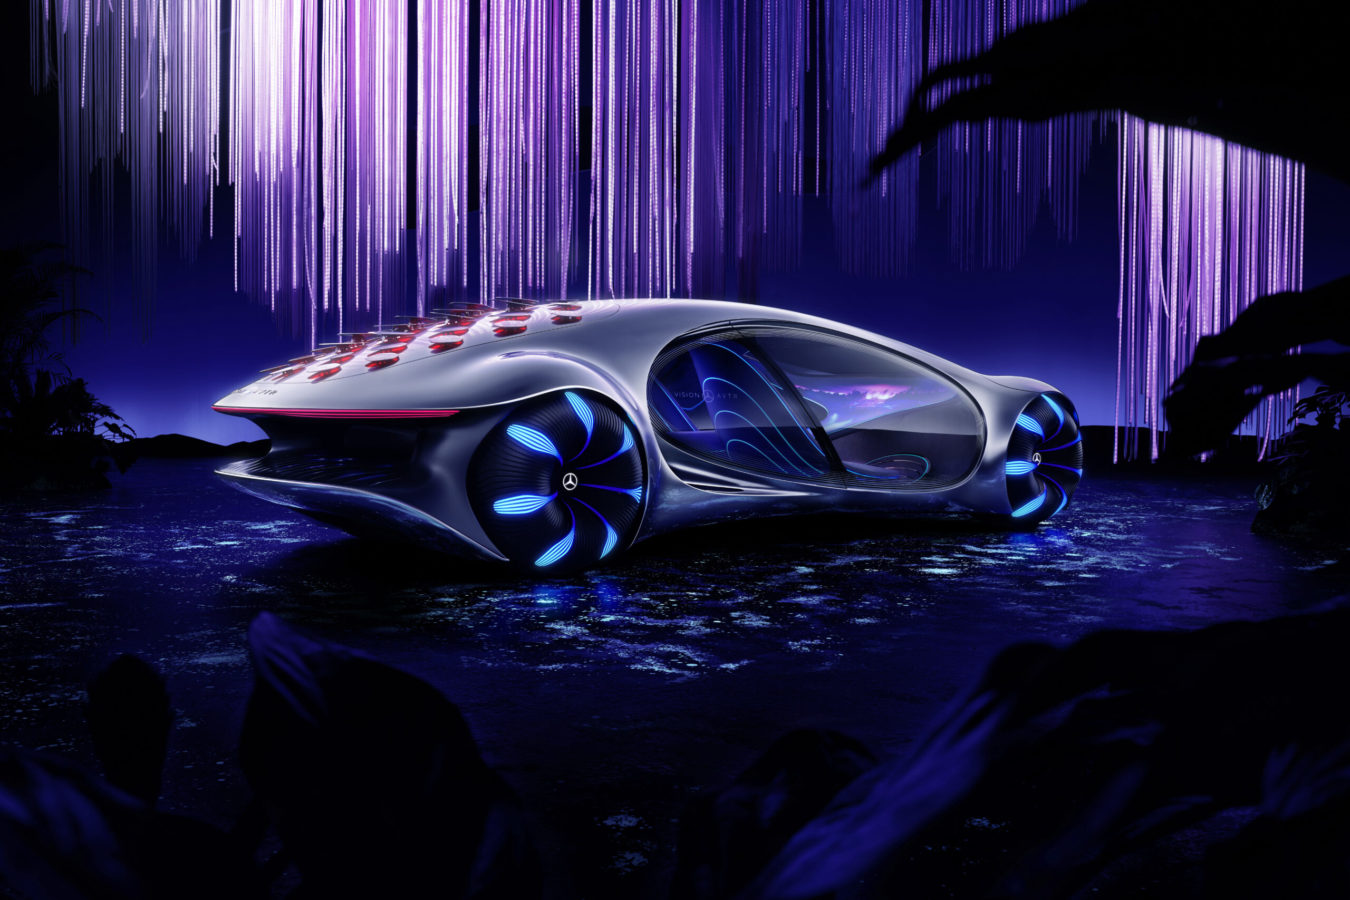 Wheels of the future: 9 greatest concept cars we've seen in 2020 (so far)